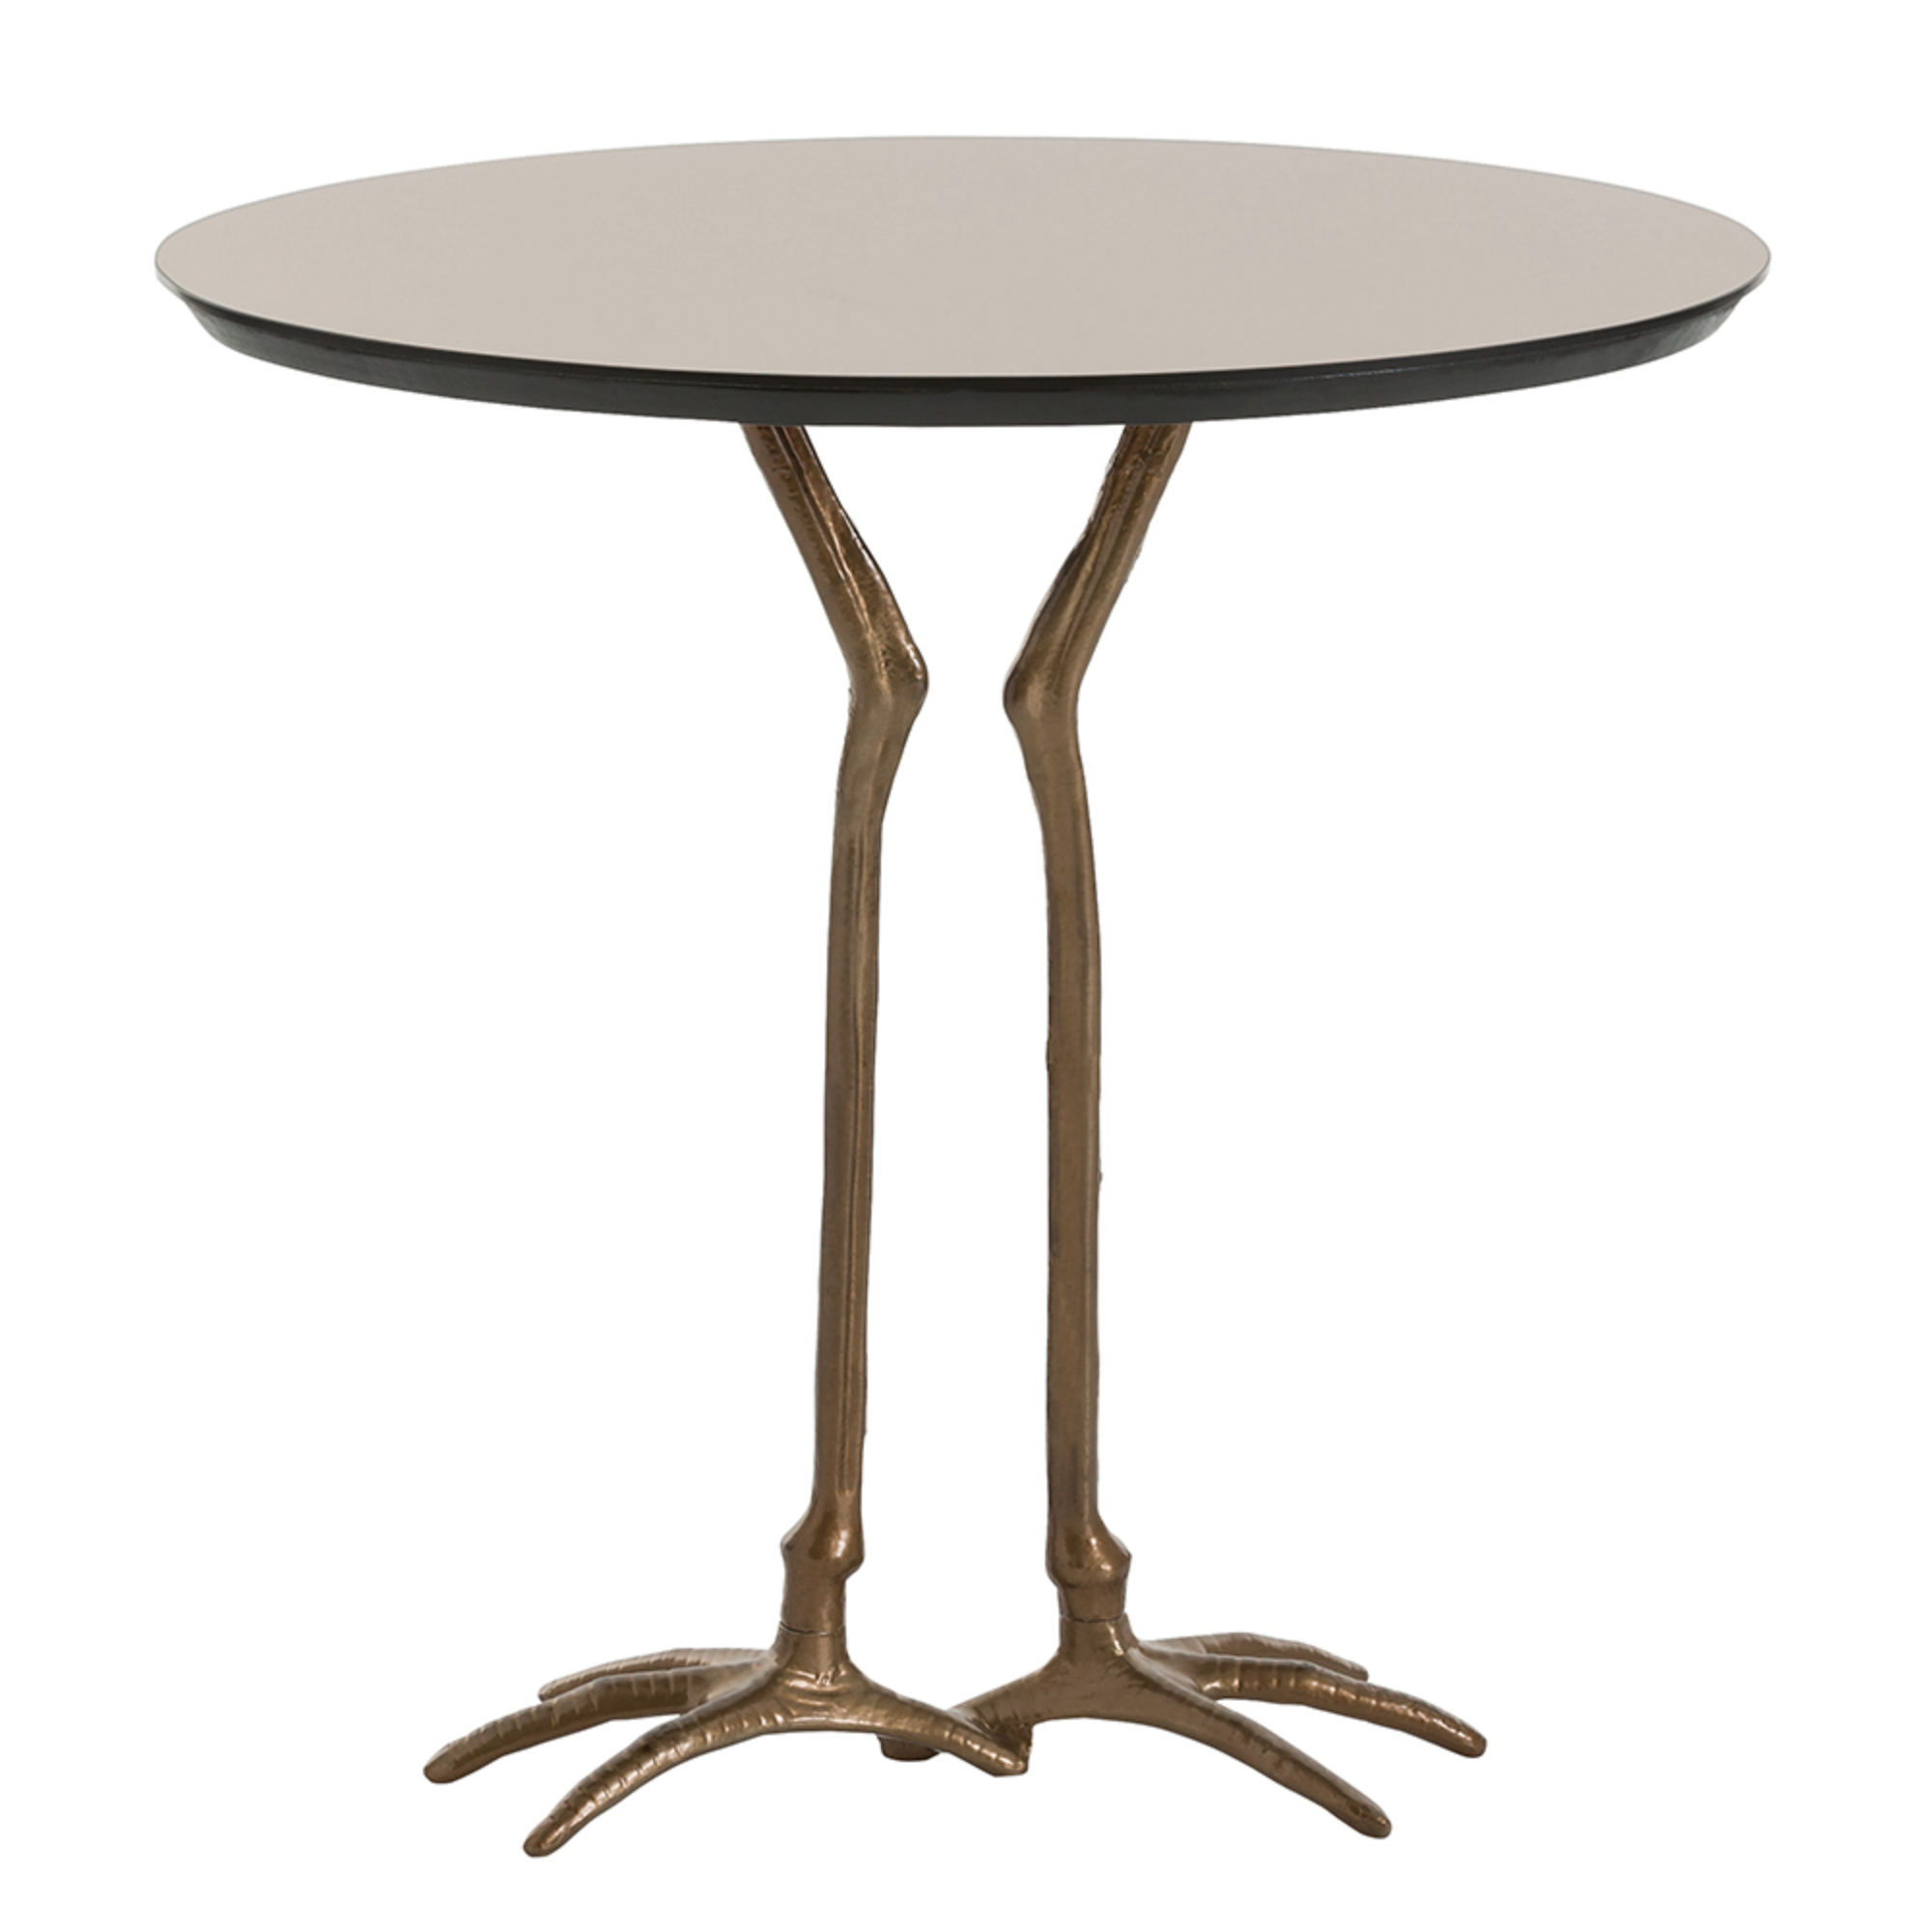 arteriors end table tops furniture tables side zebi accent emilio industrial traditional transitional dering hall very small coffee waterproof cover for garden and chairs cabinet